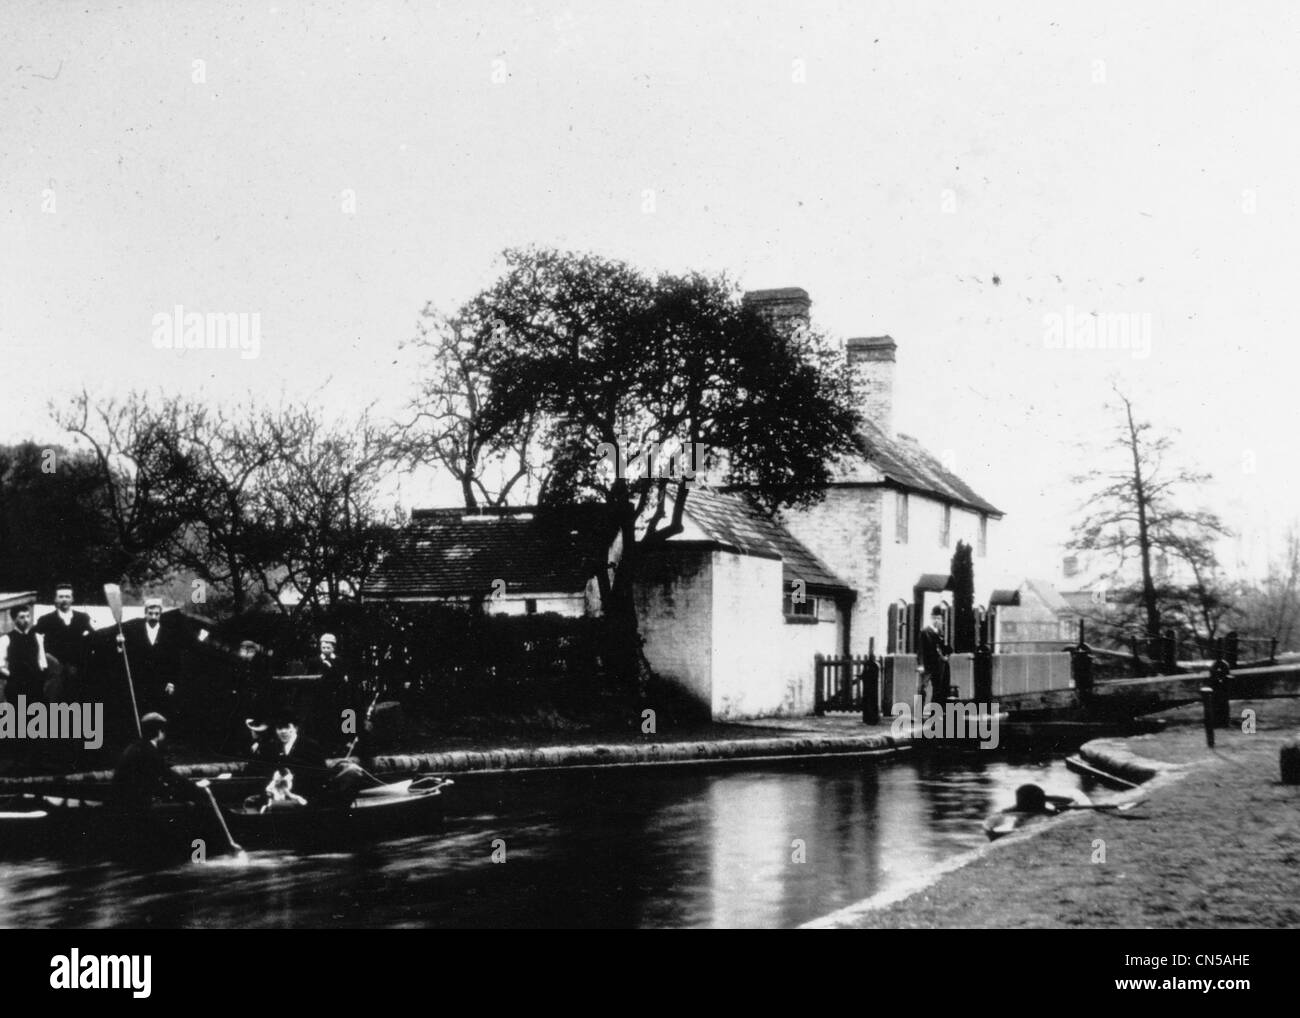 Compton Lock, Wolverhampton, Staffordshire & Worcestershire Canal, early 20th century. - Stock Image